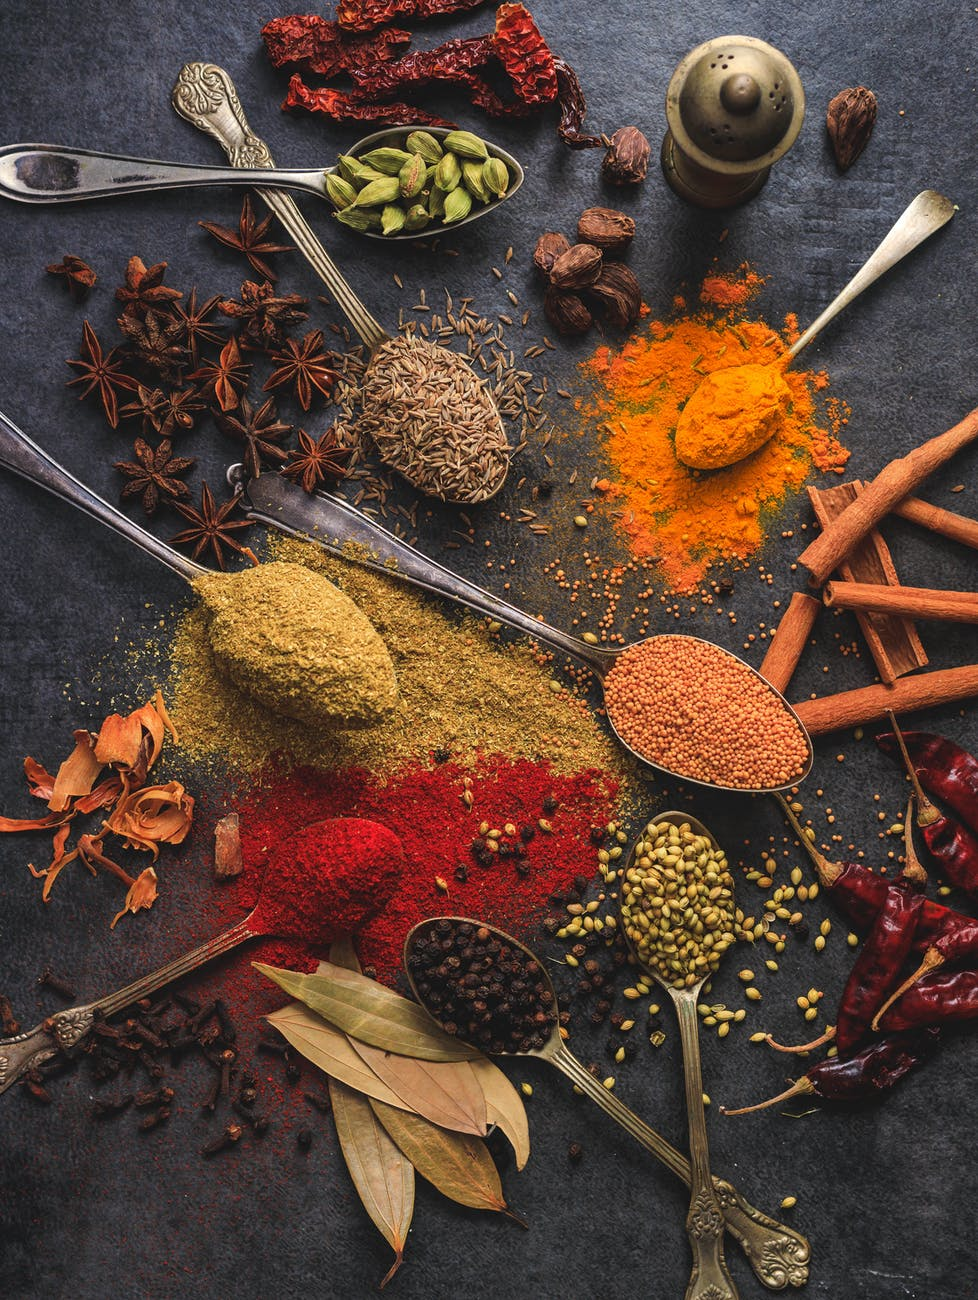 An assortment of various spices